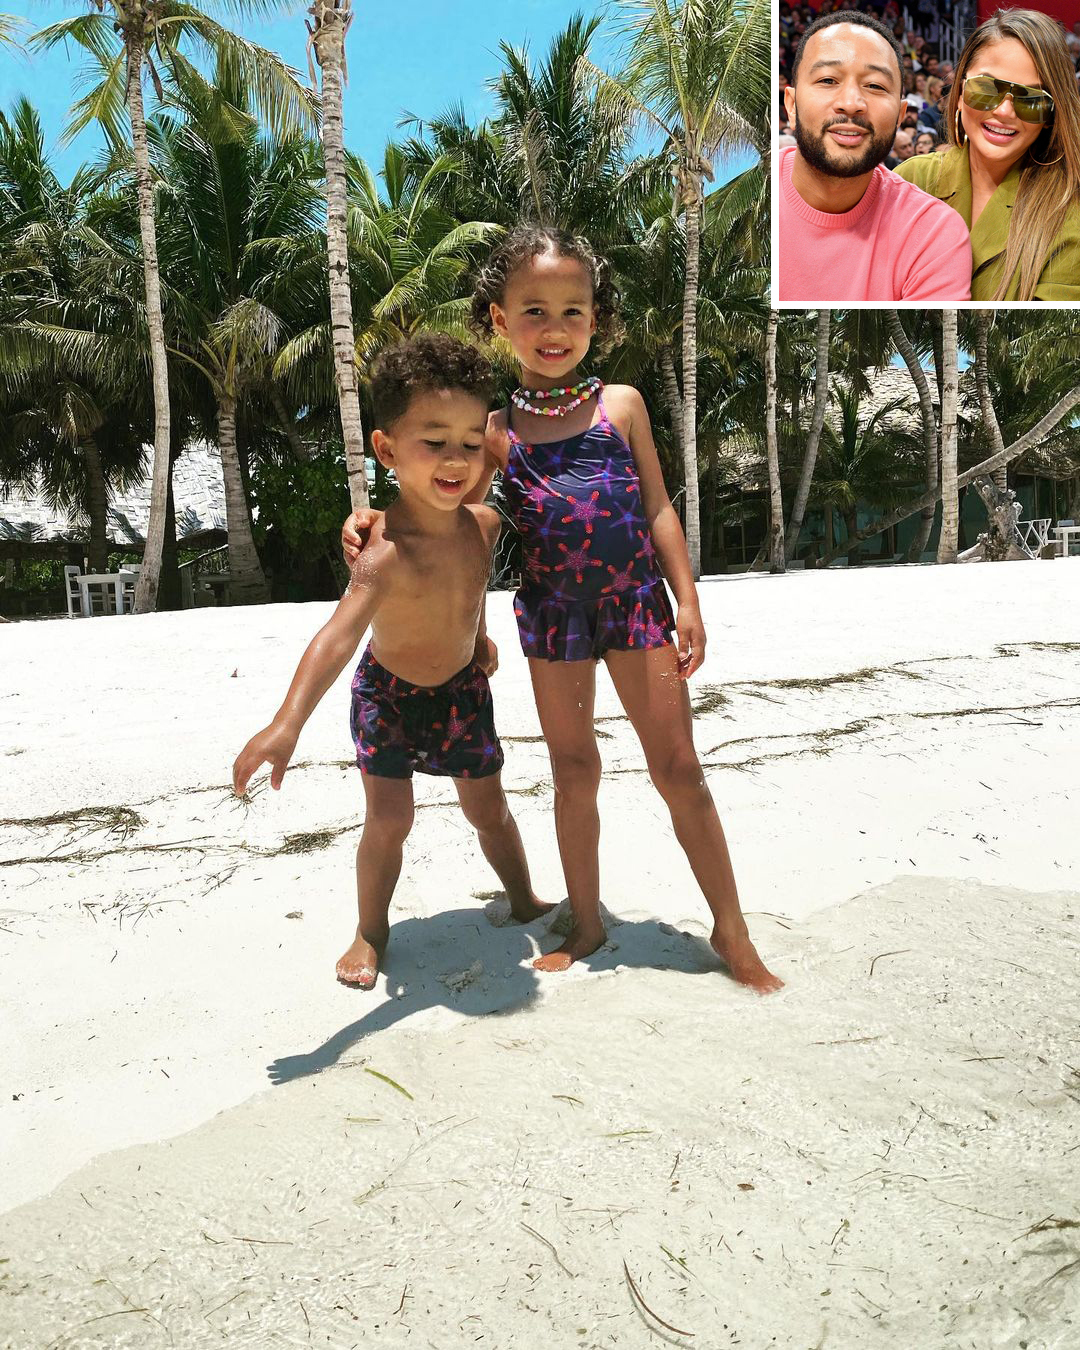 Chrissy Teigen and John Legend's Cutest Snaps of 'BFF' Daughter Luna and Son Miles on Vacation